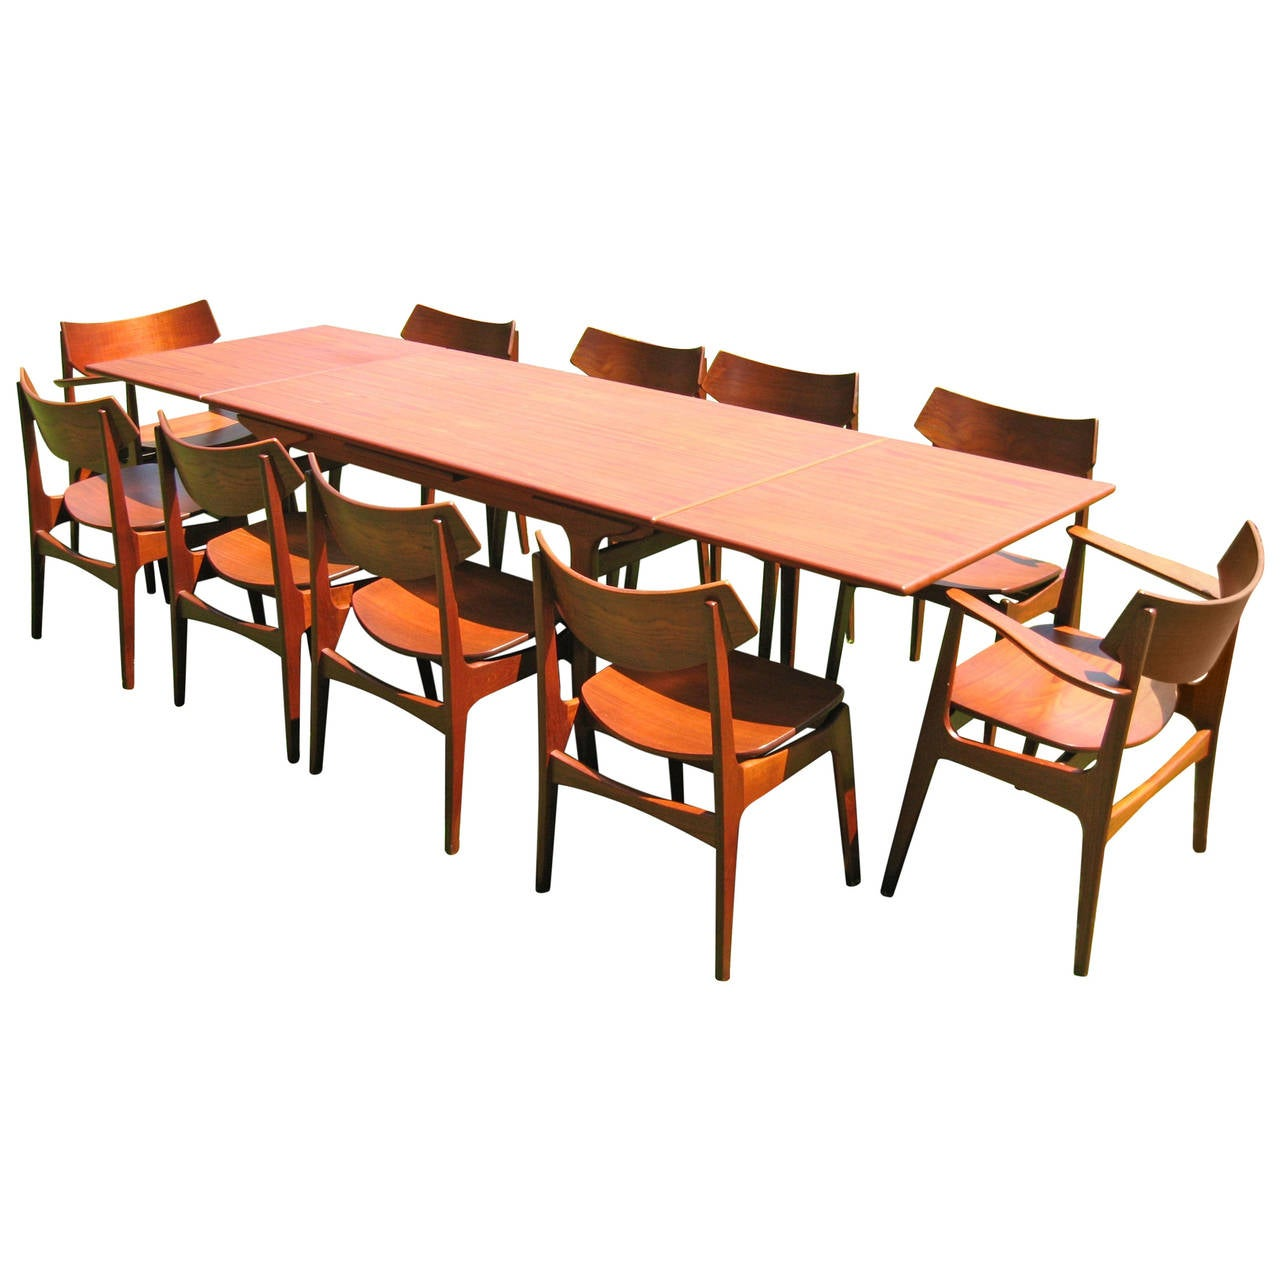 Teak Danish Modern Dining Room Table With Ten Chairs By